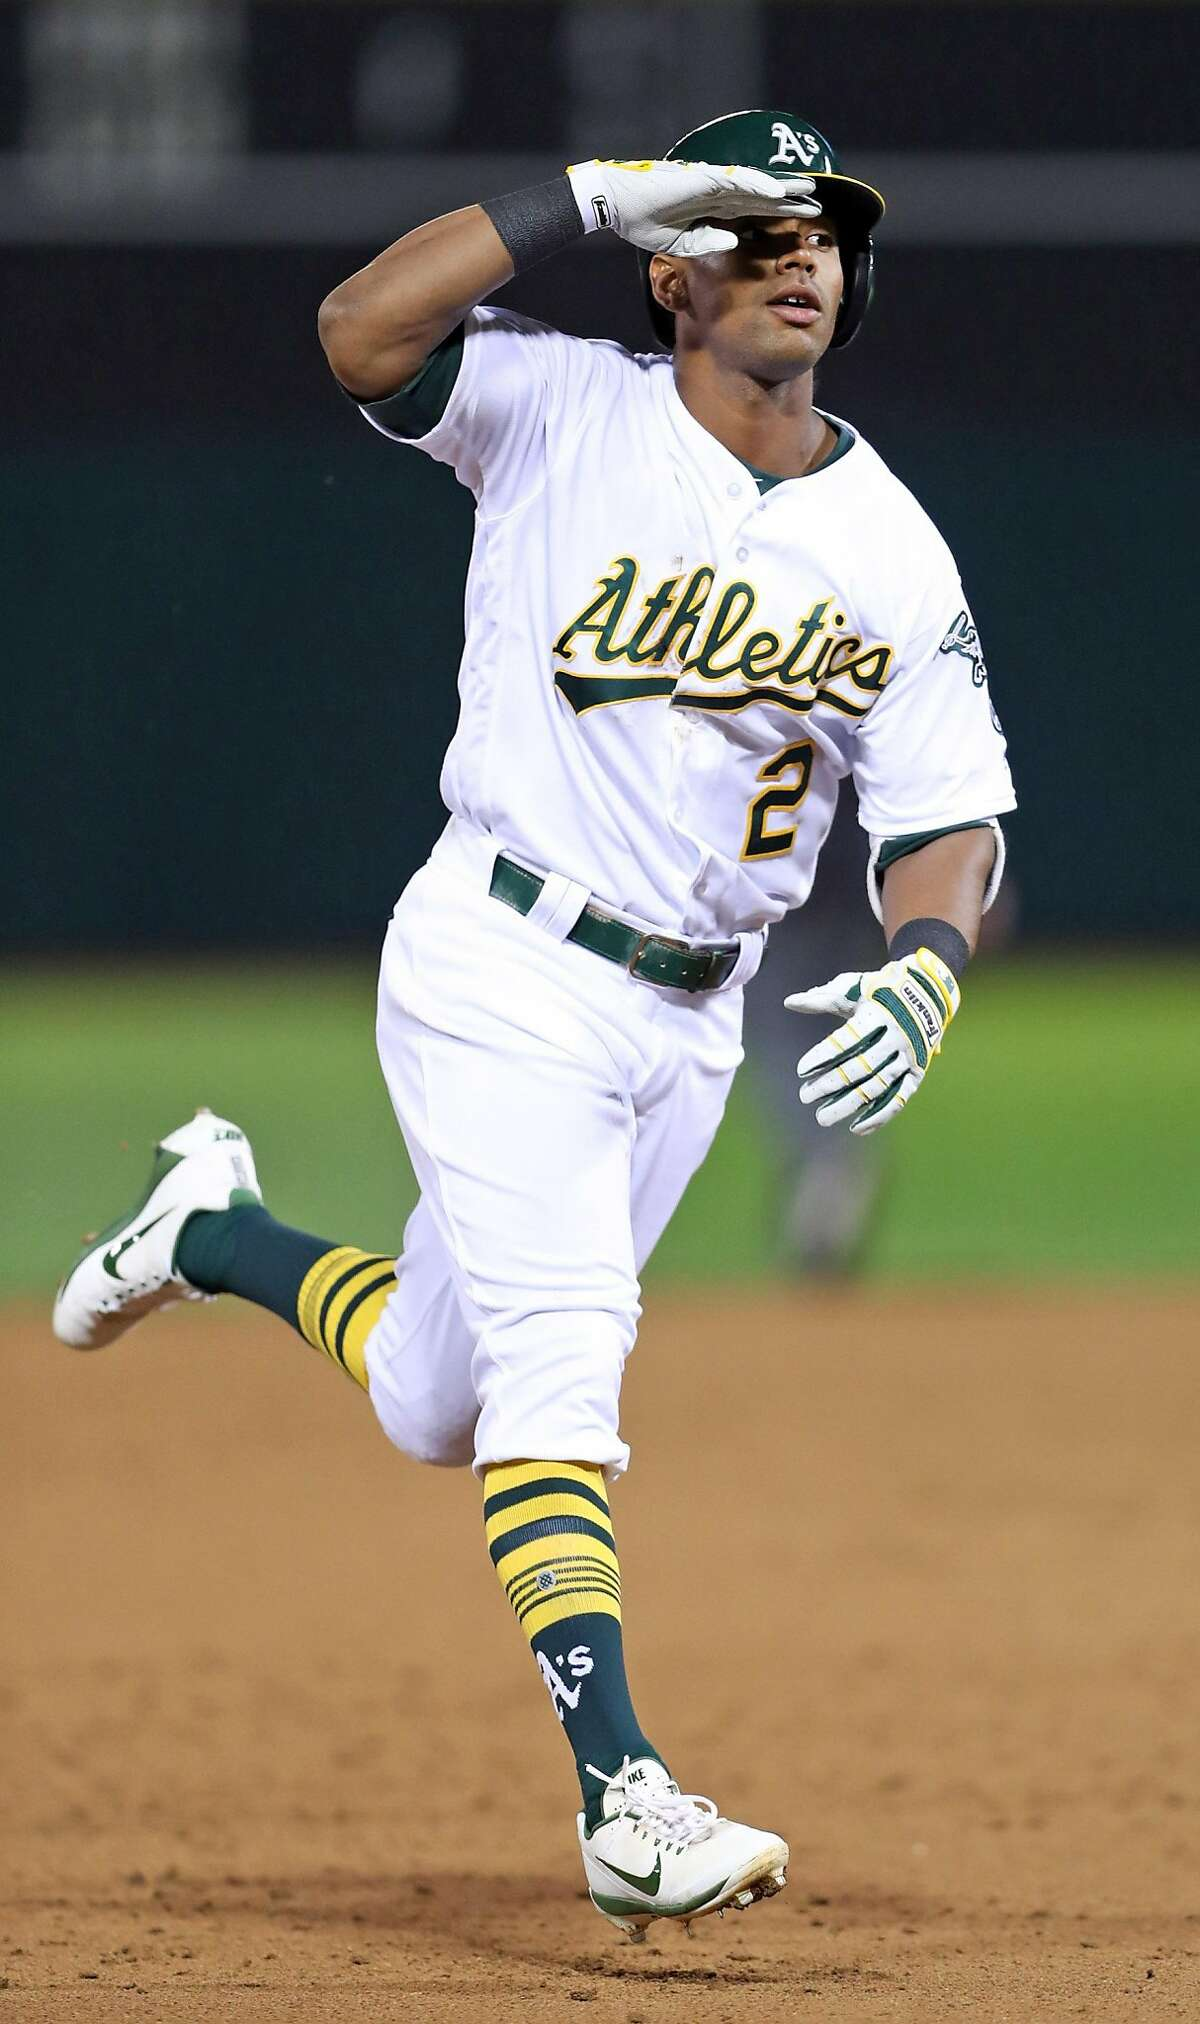 Oakland Athletics' Khris Davis salutes while rounding the bases after his 6th inning solo home run against Anaheim Angels during A's home opener at the Oakland Coliseum in Oakland, Calif., on Monday, April 3, 2017.